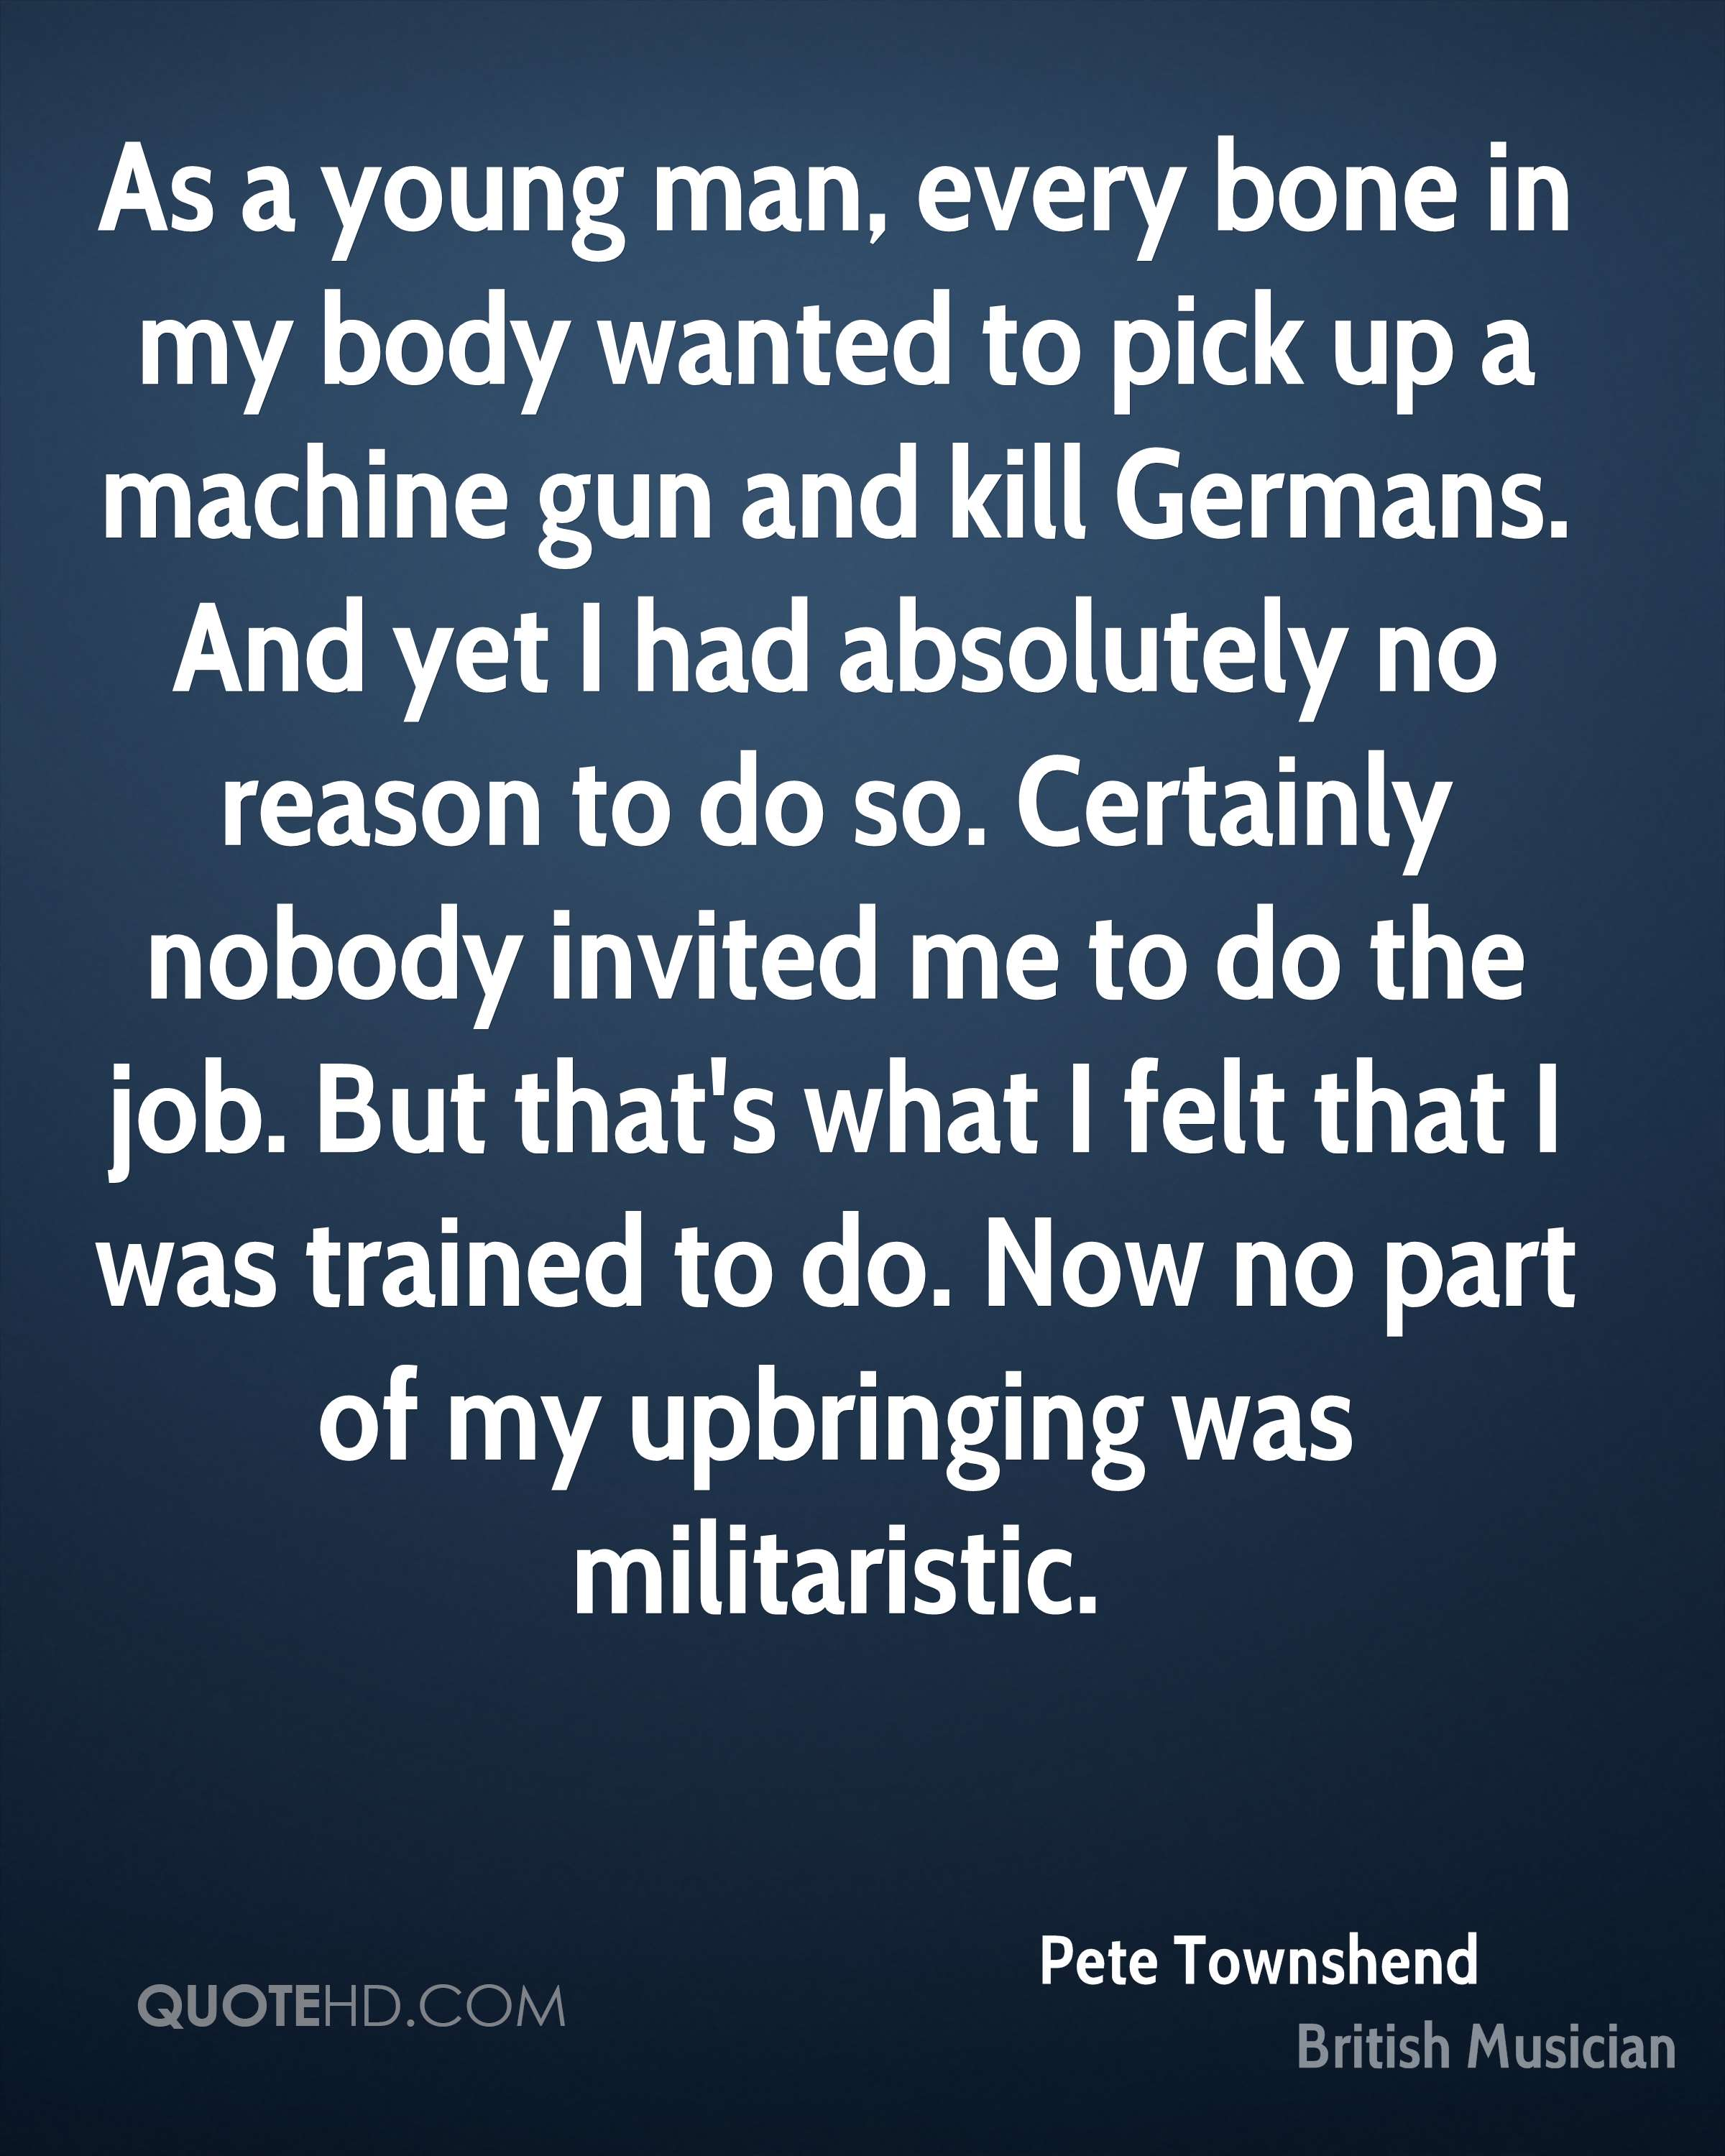 As a young man, every bone in my body wanted to pick up a machine gun and kill Germans. And yet I had absolutely no reason to do so. Certainly nobody invited me to do the job. But that's what I felt that I was trained to do. Now no part of my upbringing was militaristic.